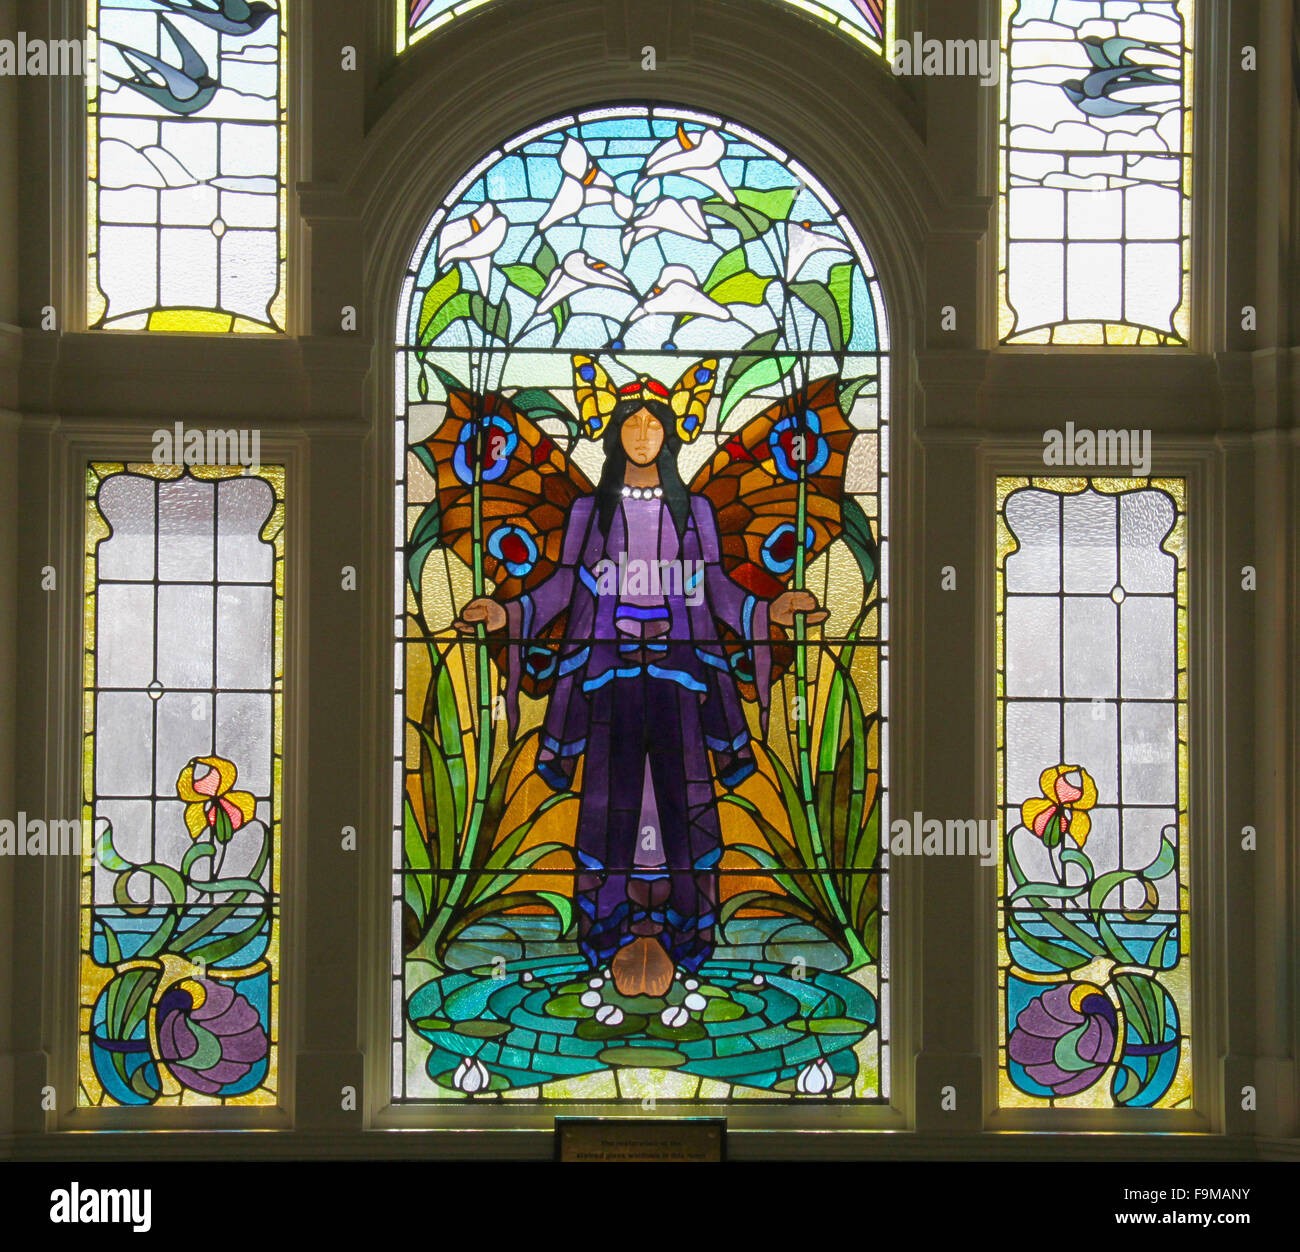 Angel of purity window - art deco stained glass at Victoria Baths in Manchester, which opened in 1906 and served - Stock Image